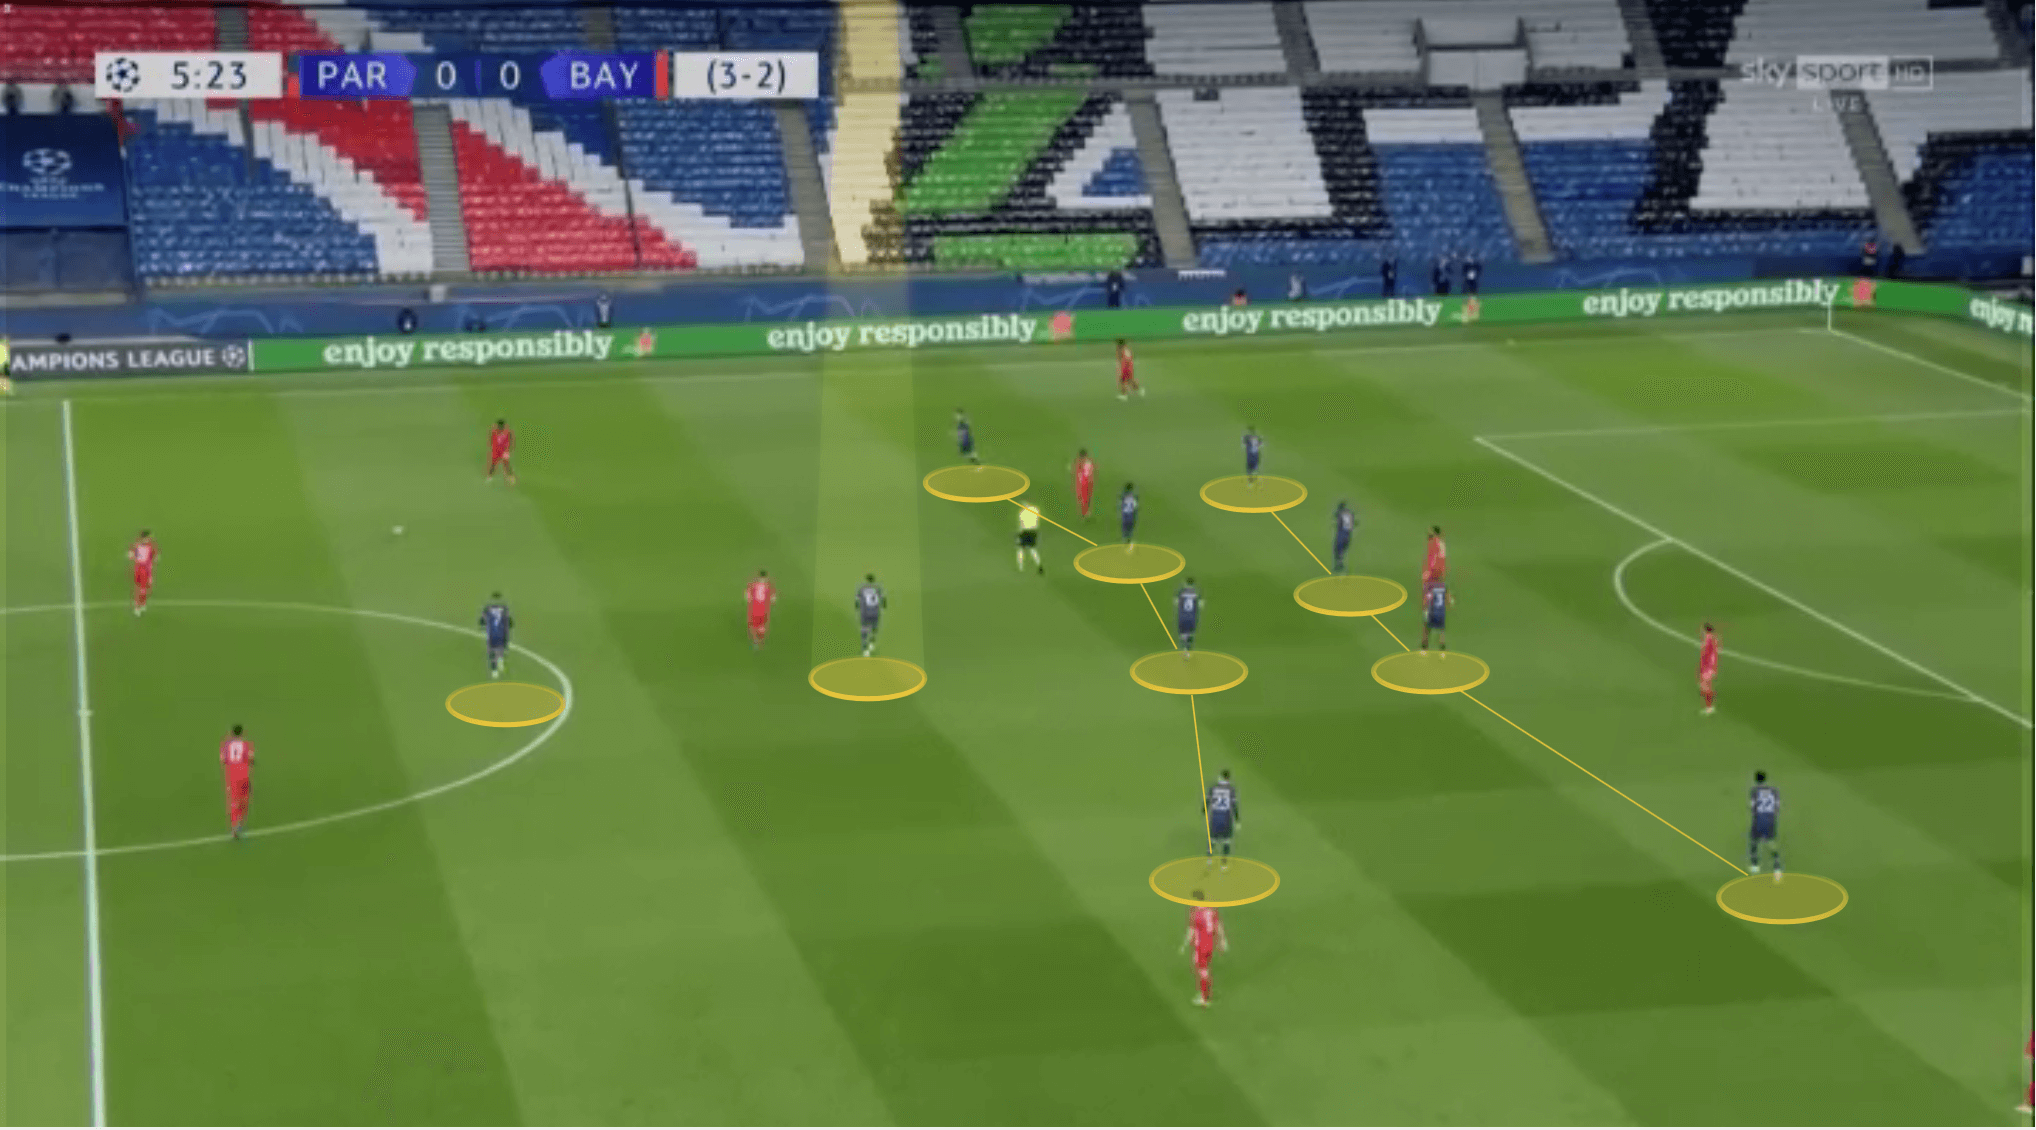 UEFA Champions League 2020/21: PSG vs Man City- tactical preview analysis tactics